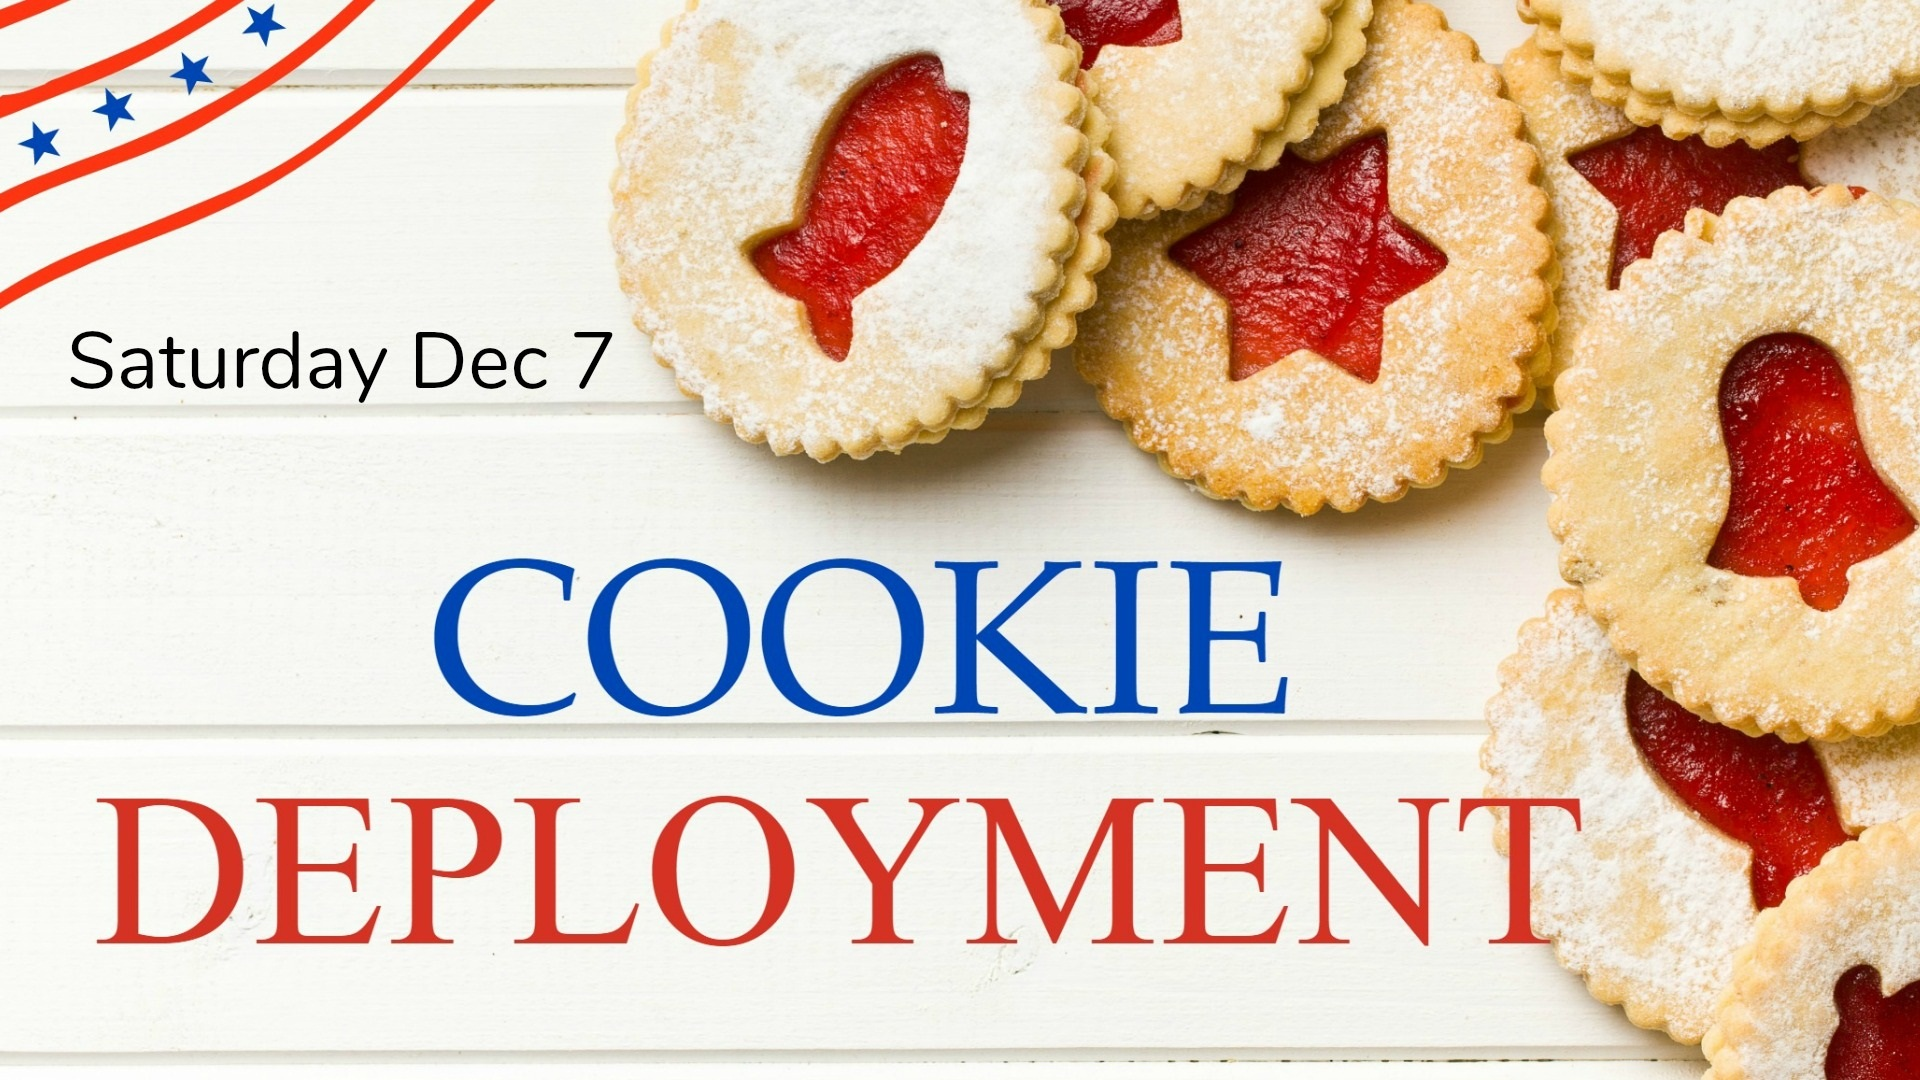 cookie deployment 2019 DATE ONLY 1920 x 1080